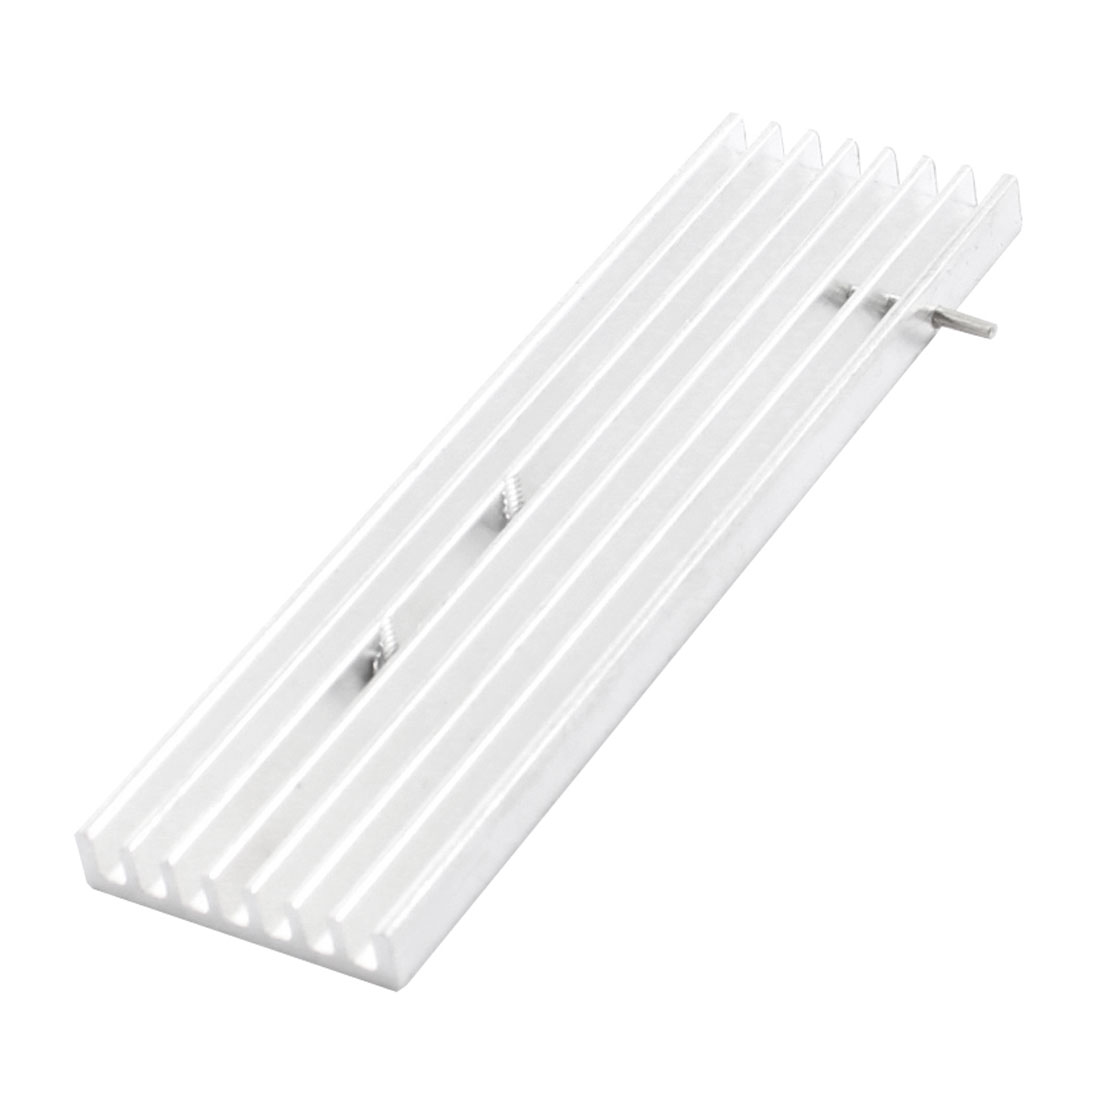 88mm x 25mm x 5mm Silver Tone Aluminum Heatsink Heat Dissipation Cooling Fin for Chipset